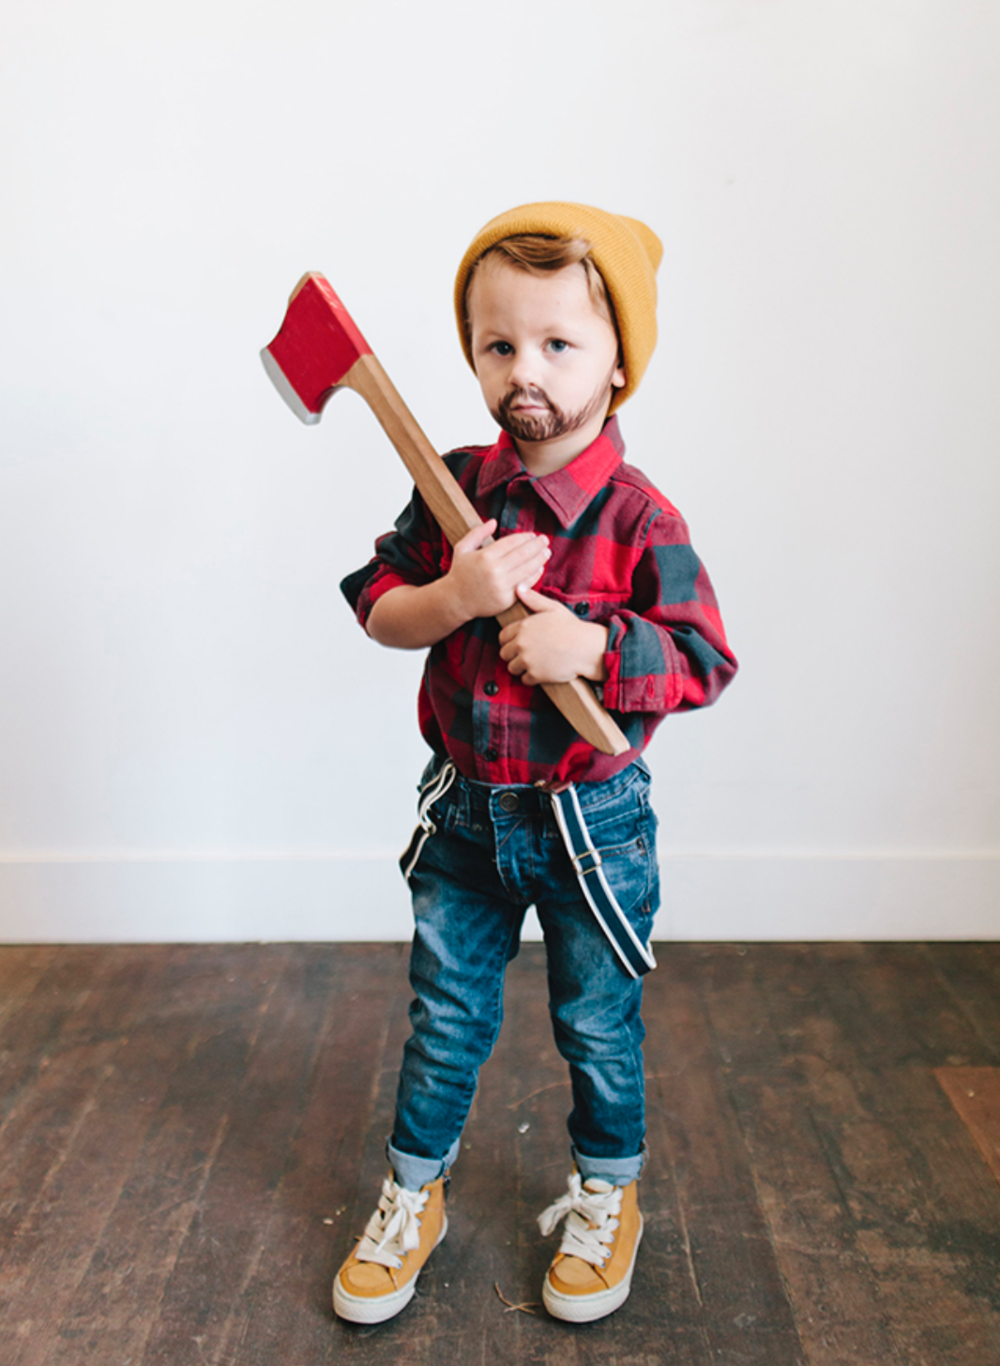 Lumberjack - What you'll need: Red Flannel, beanie, jeans, suspenders and a toy hatchet.